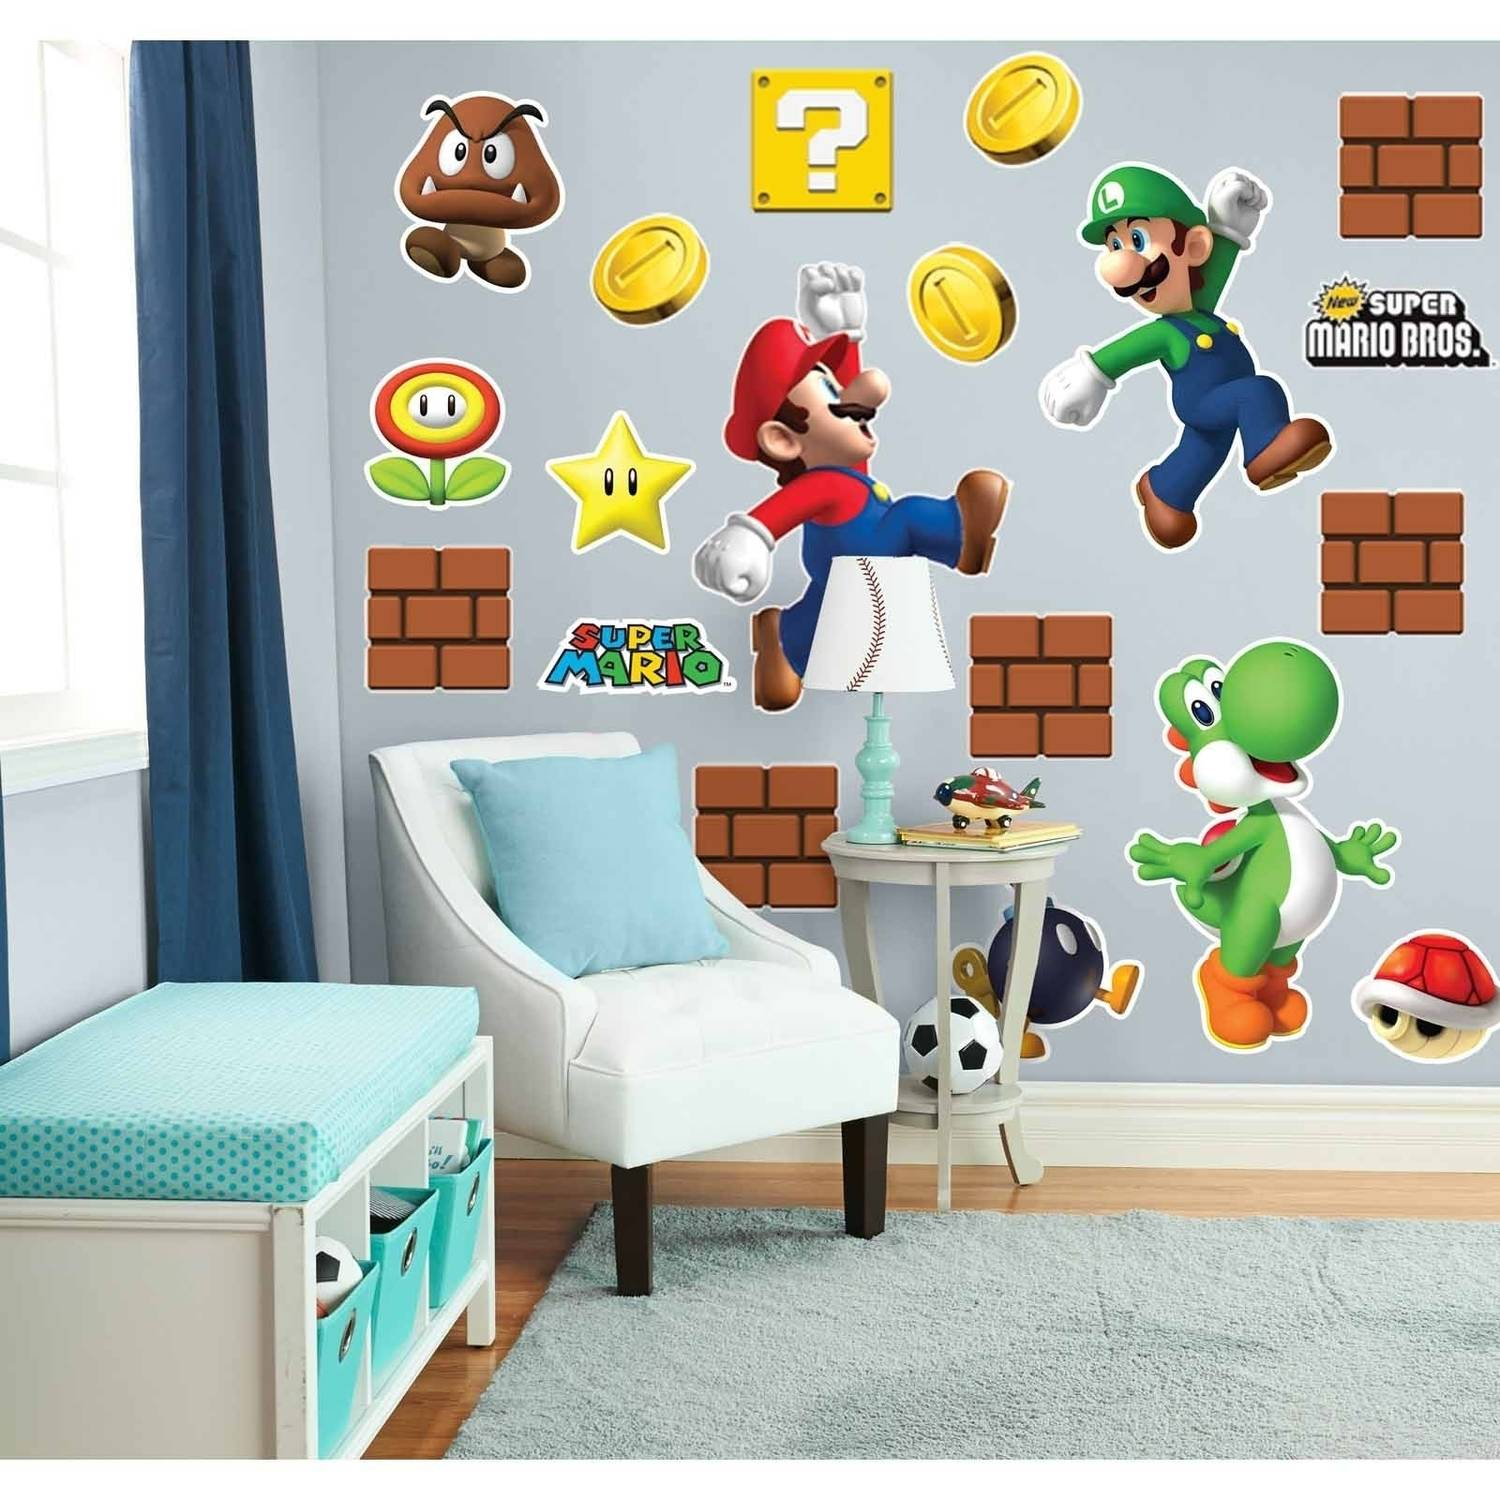 Super Mario Bros Mario, Luigi and Yoshi Giant Wall Decals Combo Kit